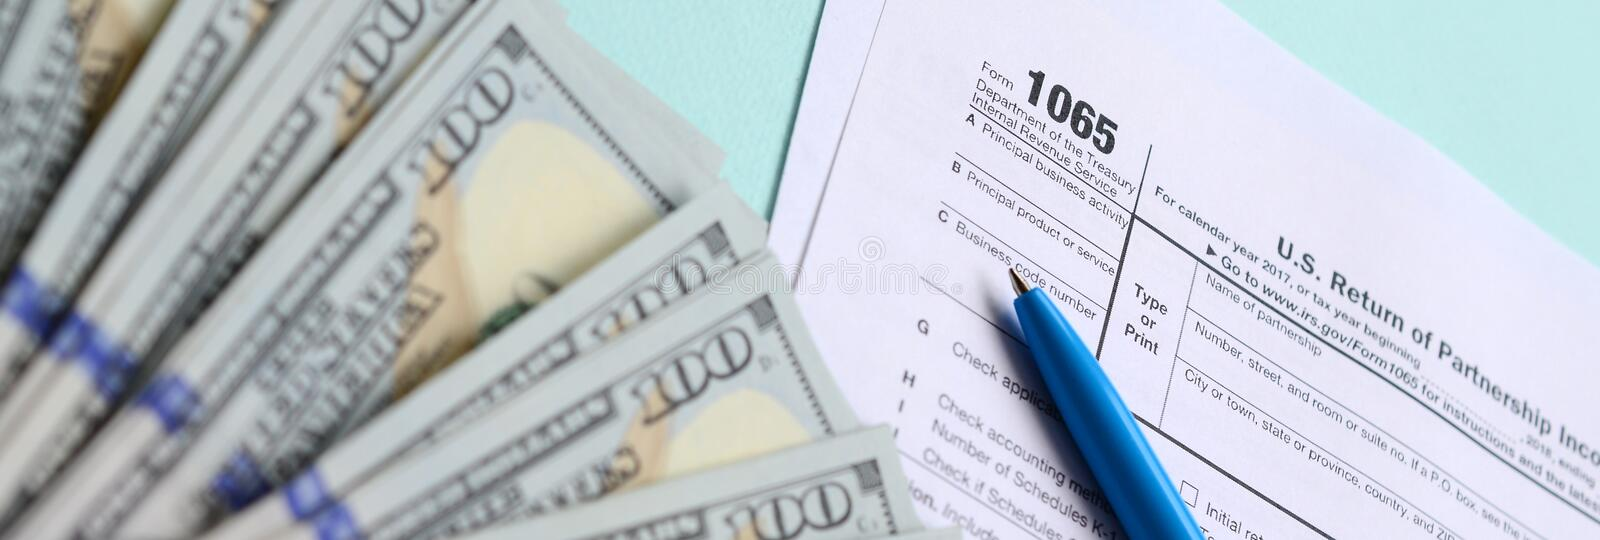 1065 tax form lies near hundred dollar bills and blue pen on a light blue background. US Return for parentship income.  royalty free stock photo